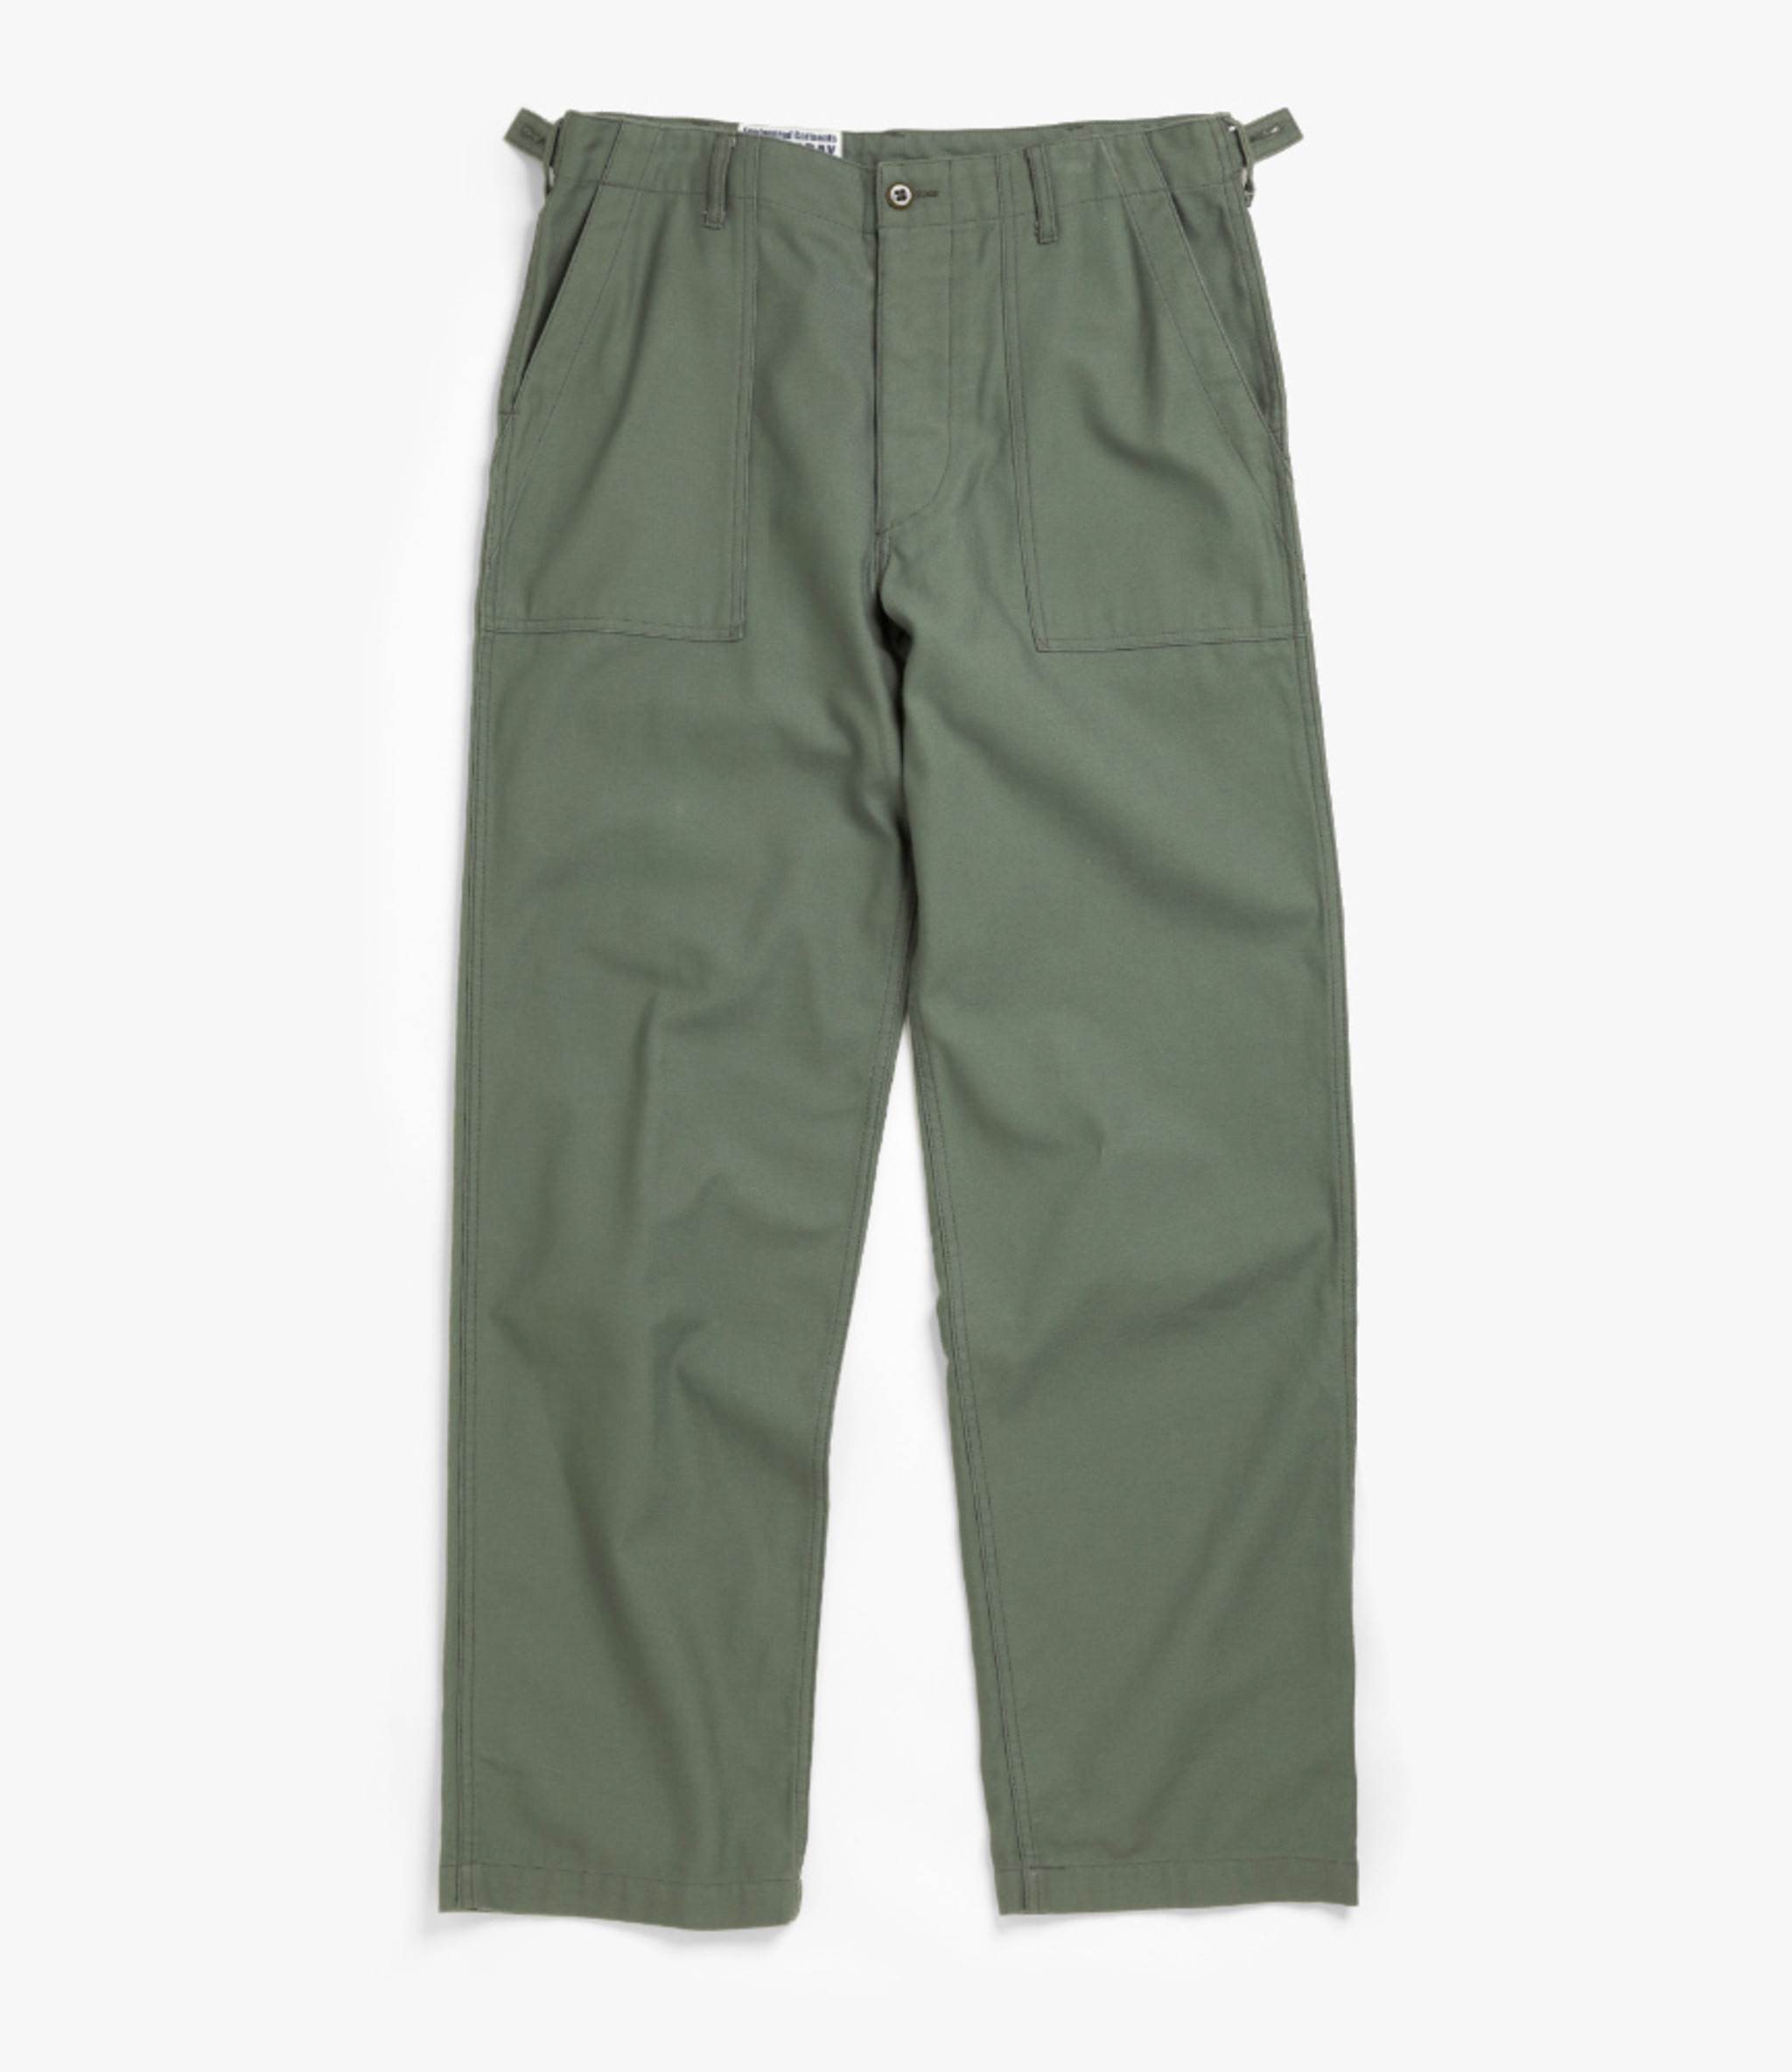 Workaday by Engineered Garments Fatigue Pant - Olive Cotton Reversed Sateen